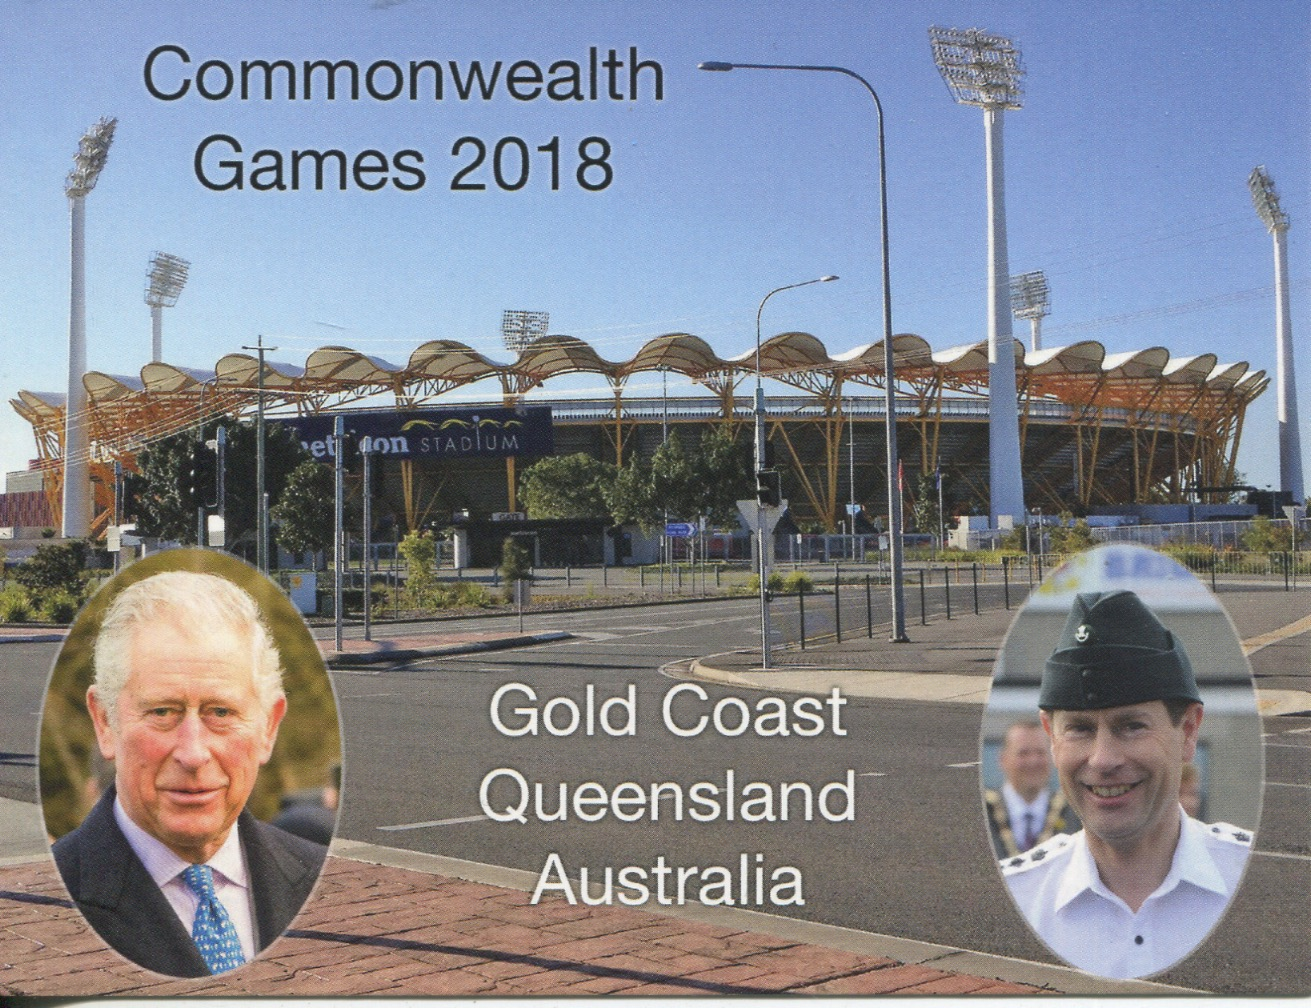 Commonwealth Games 2018 - Gold Coast - Queensland